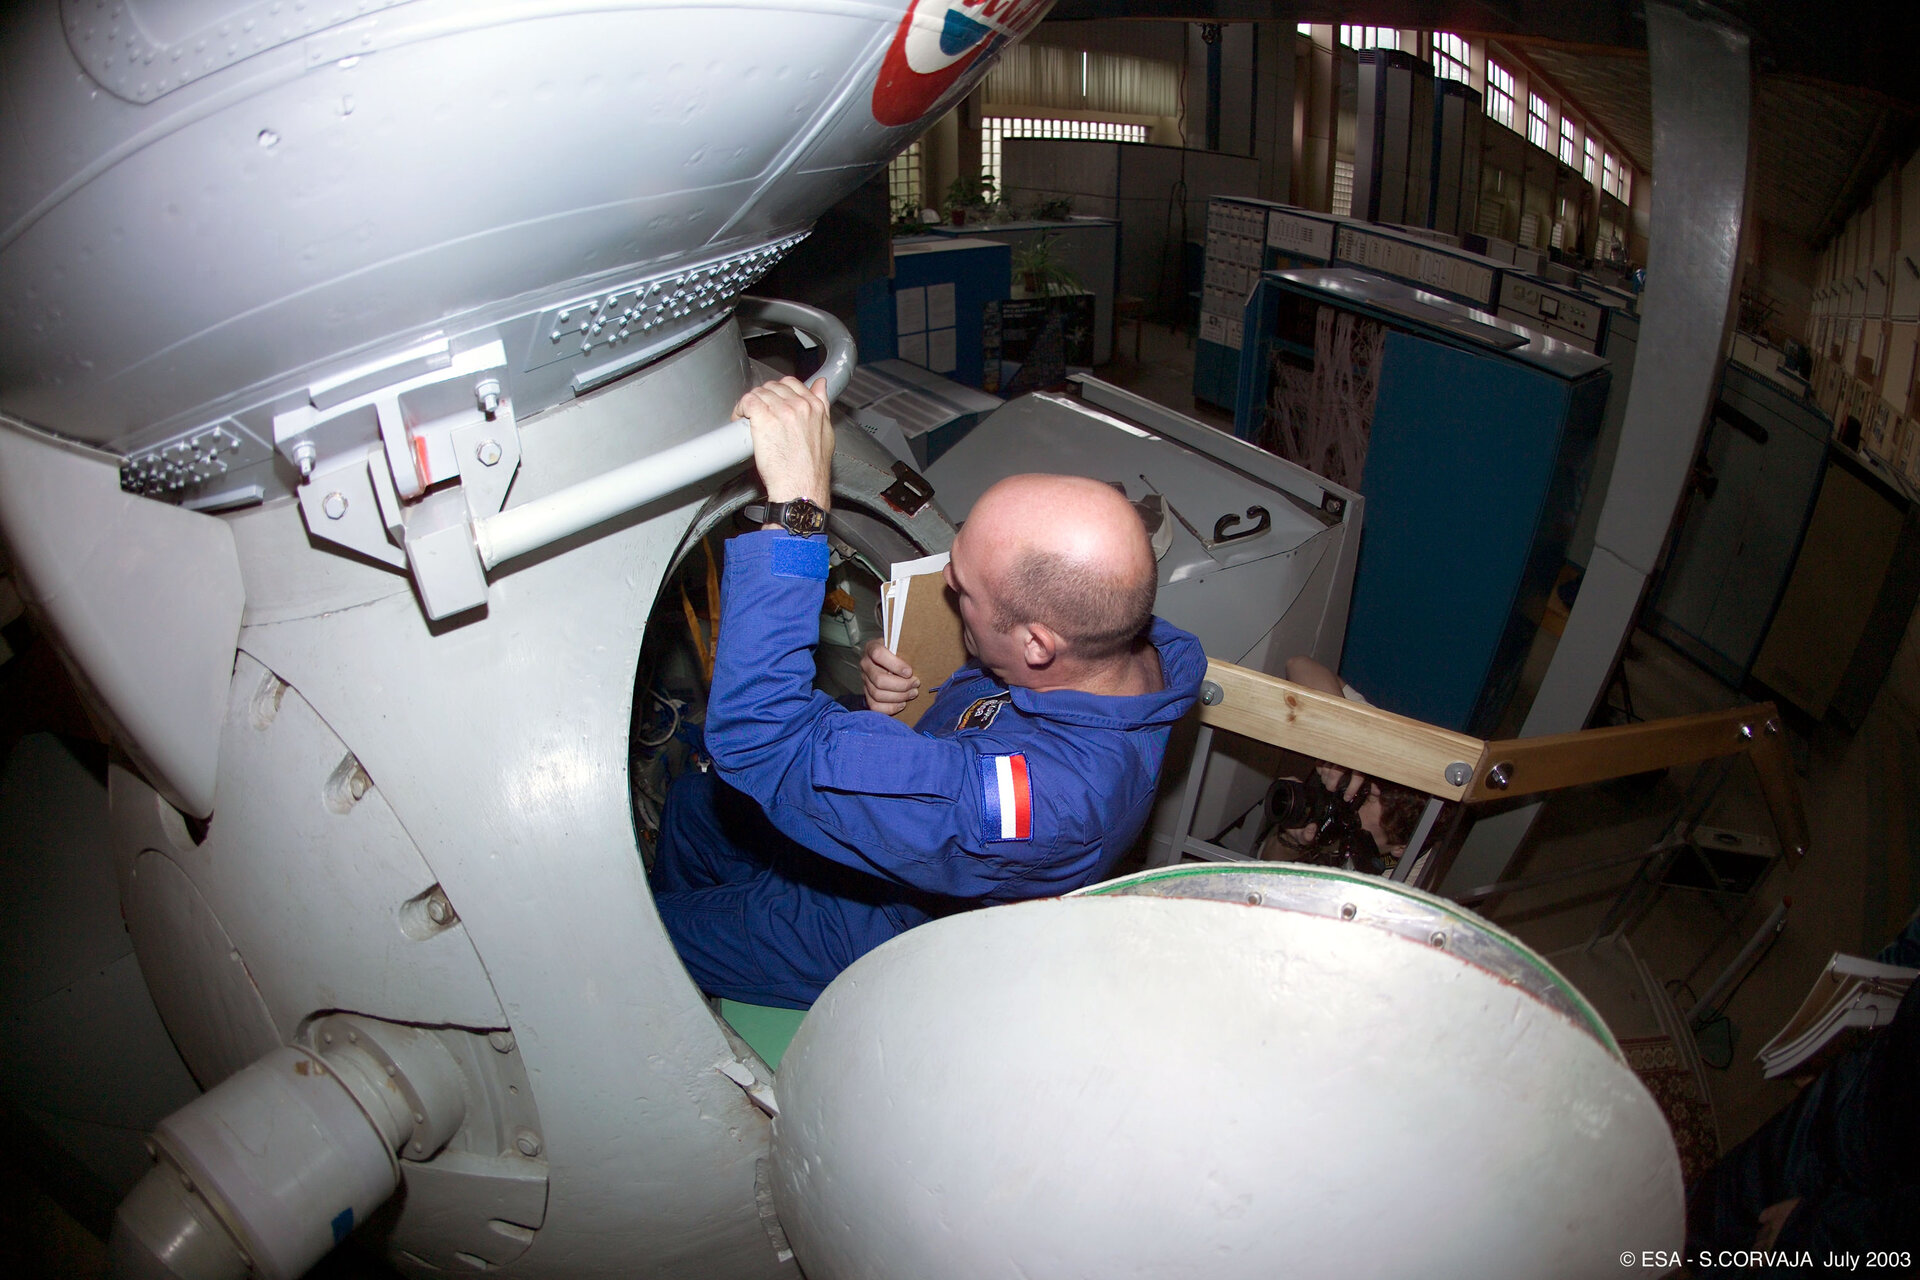 Climbing into the Soyuz simulator